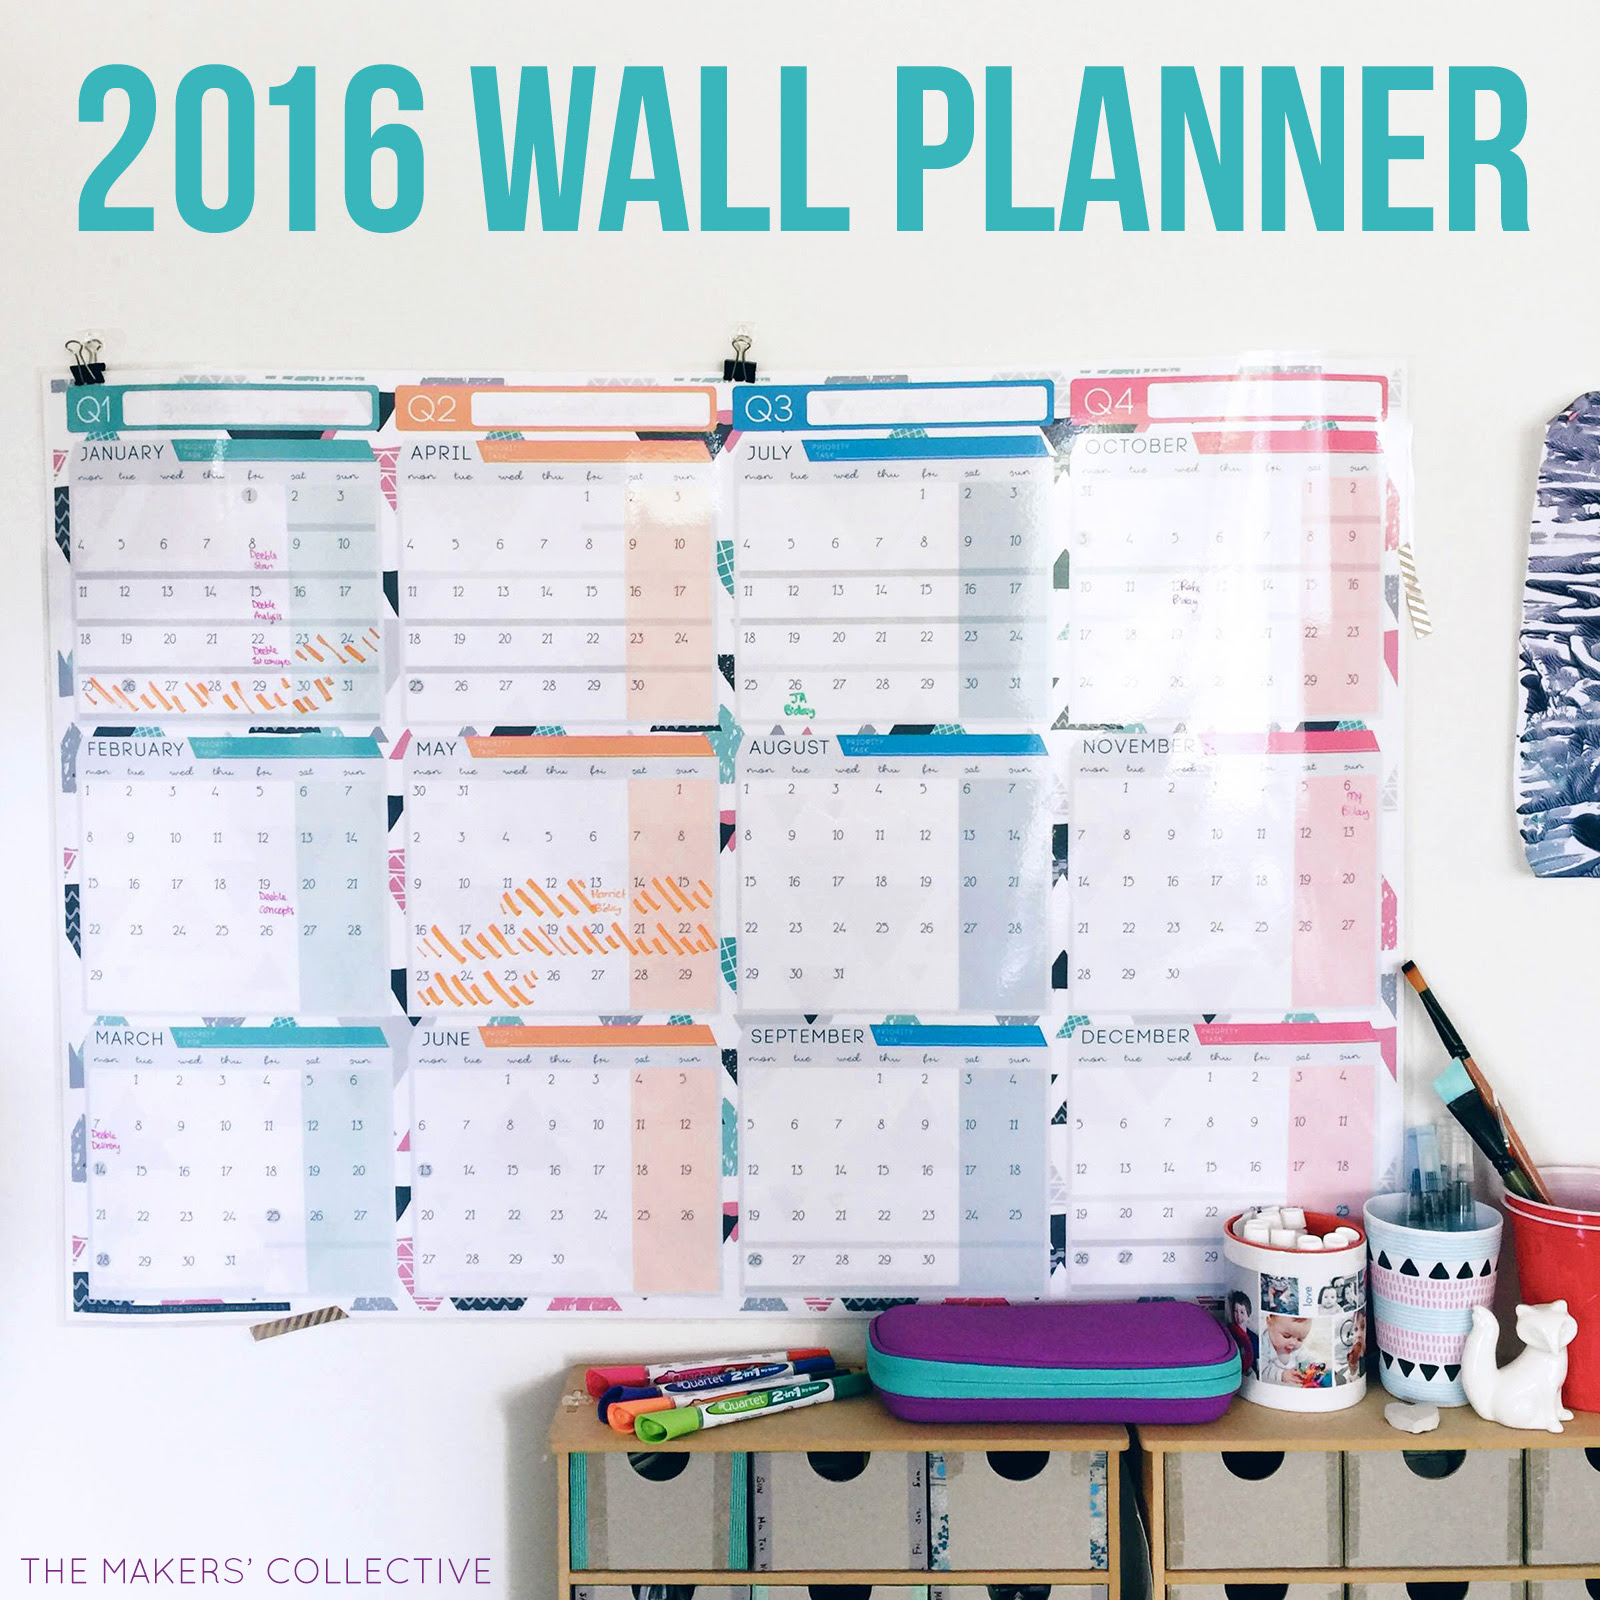 2016 wall planner1